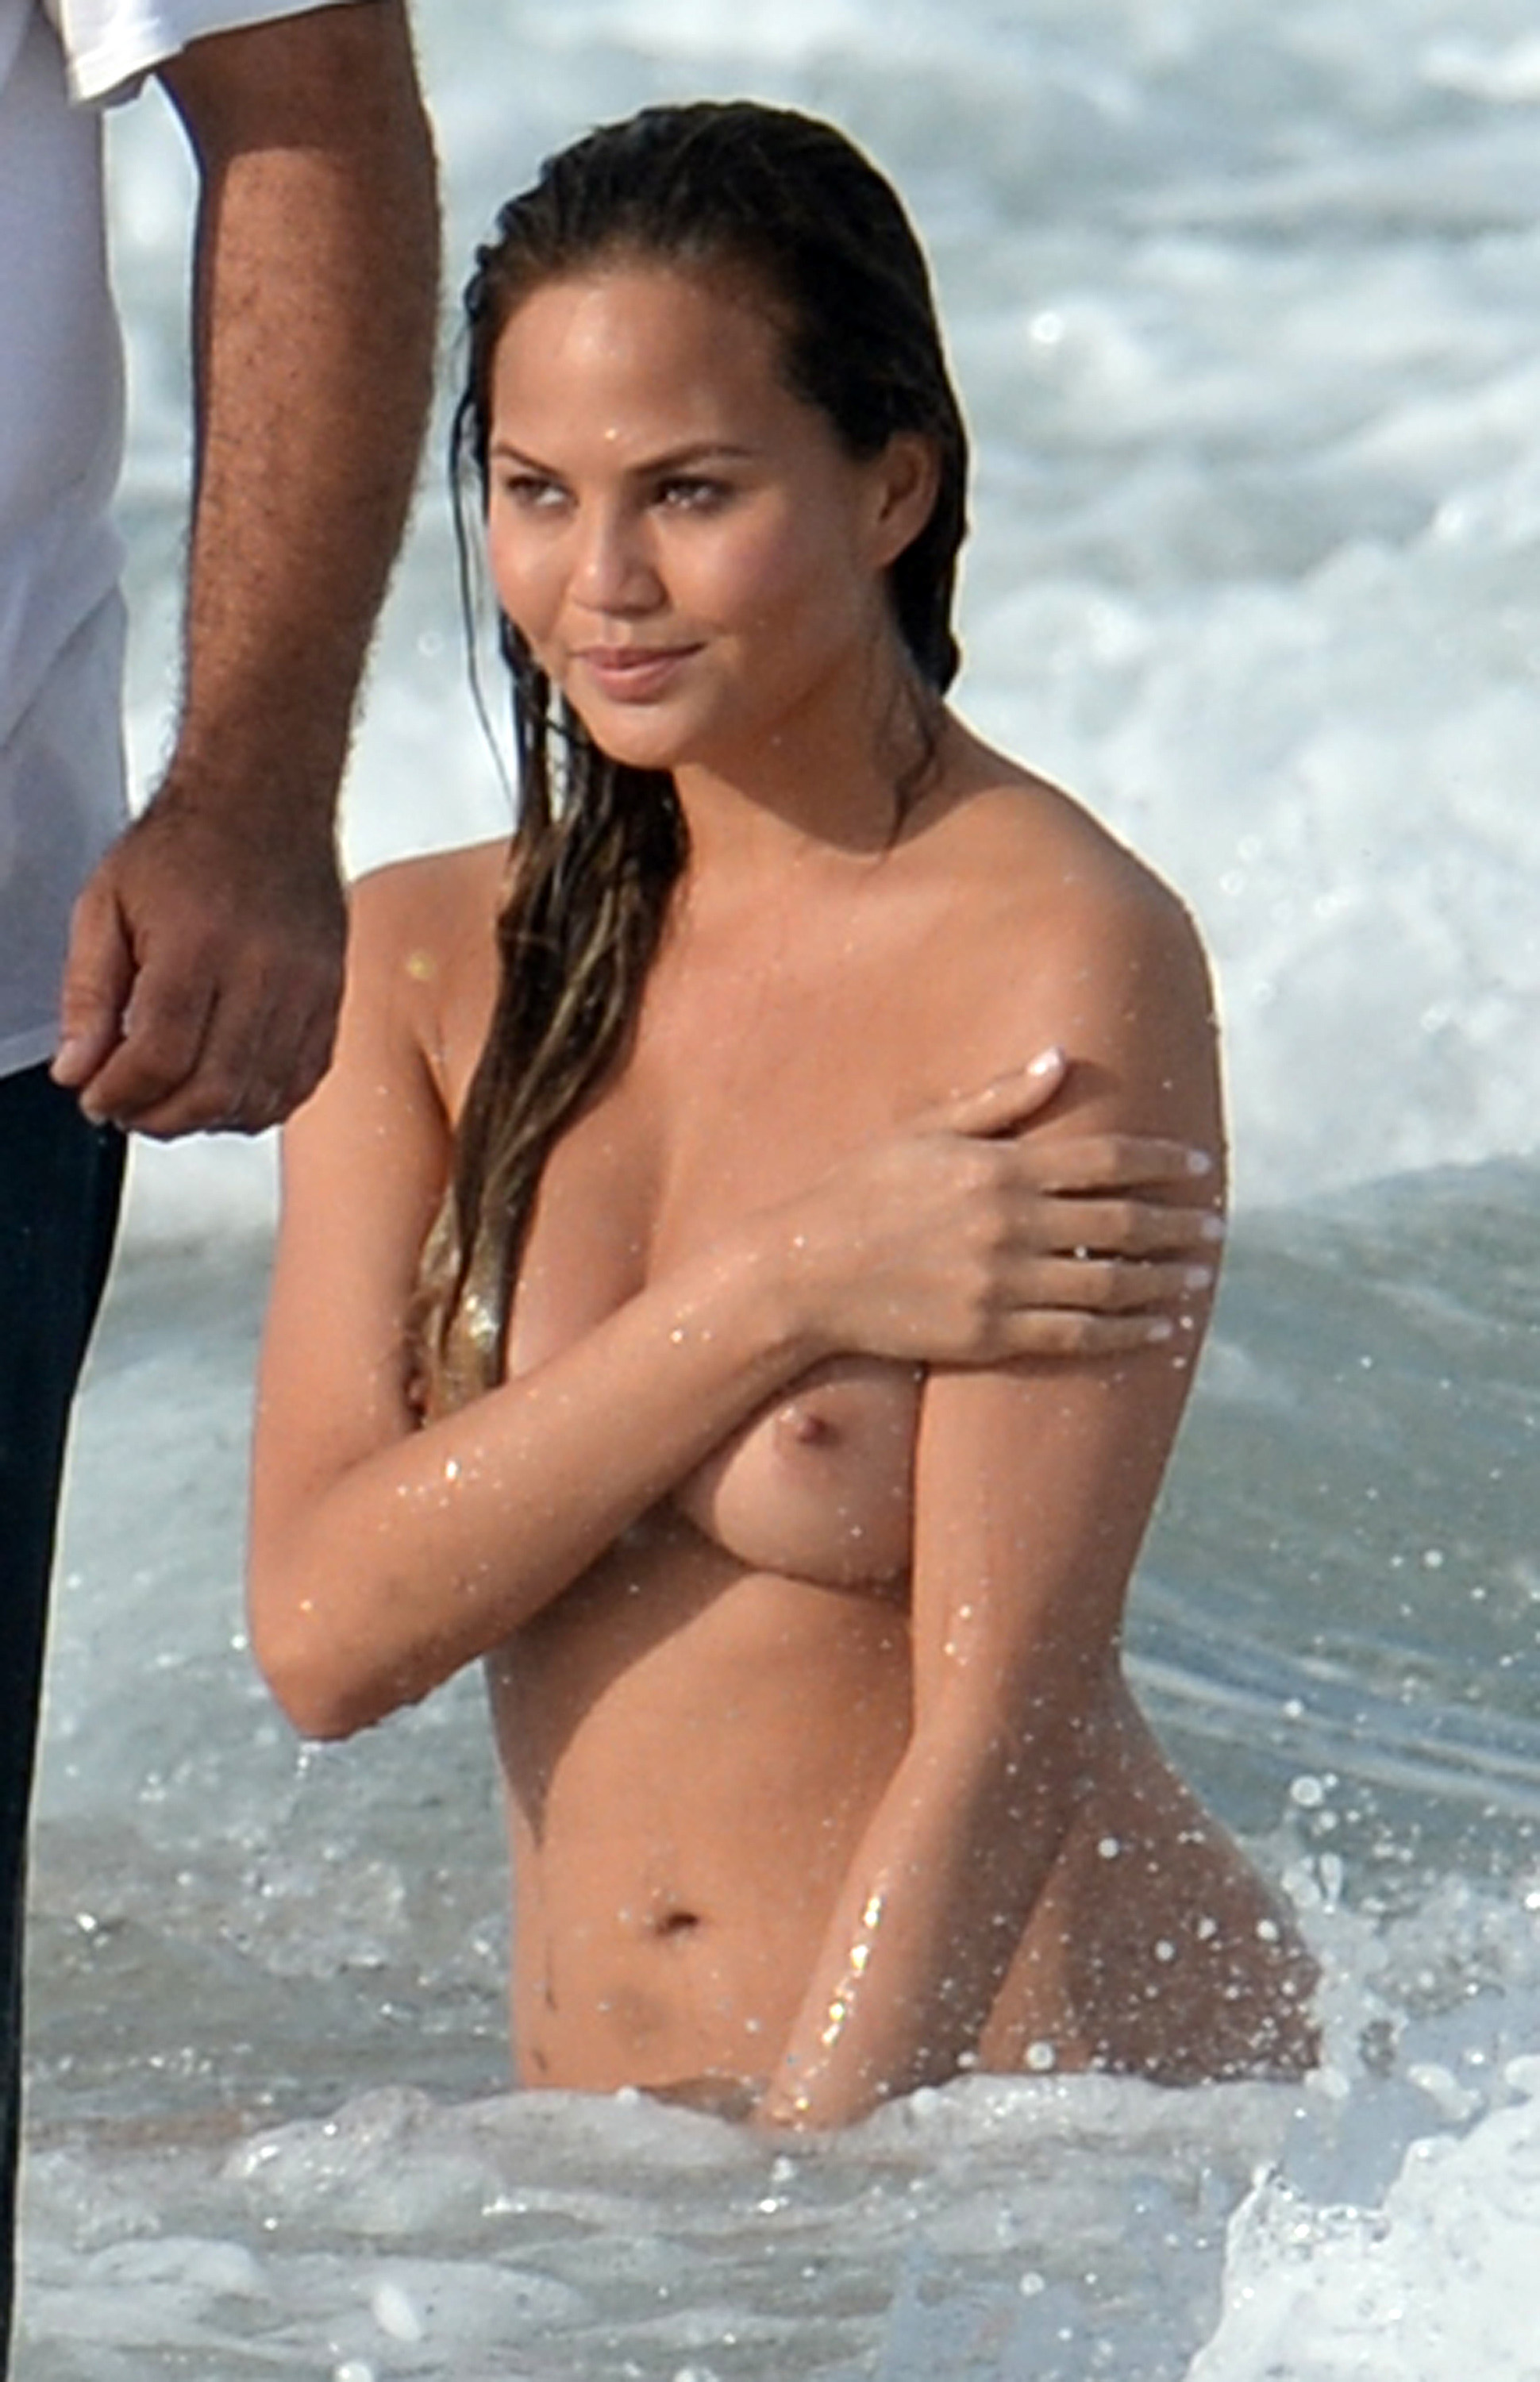 Chrissy Teigen Topless Photoshoot At Miami Beach -8477